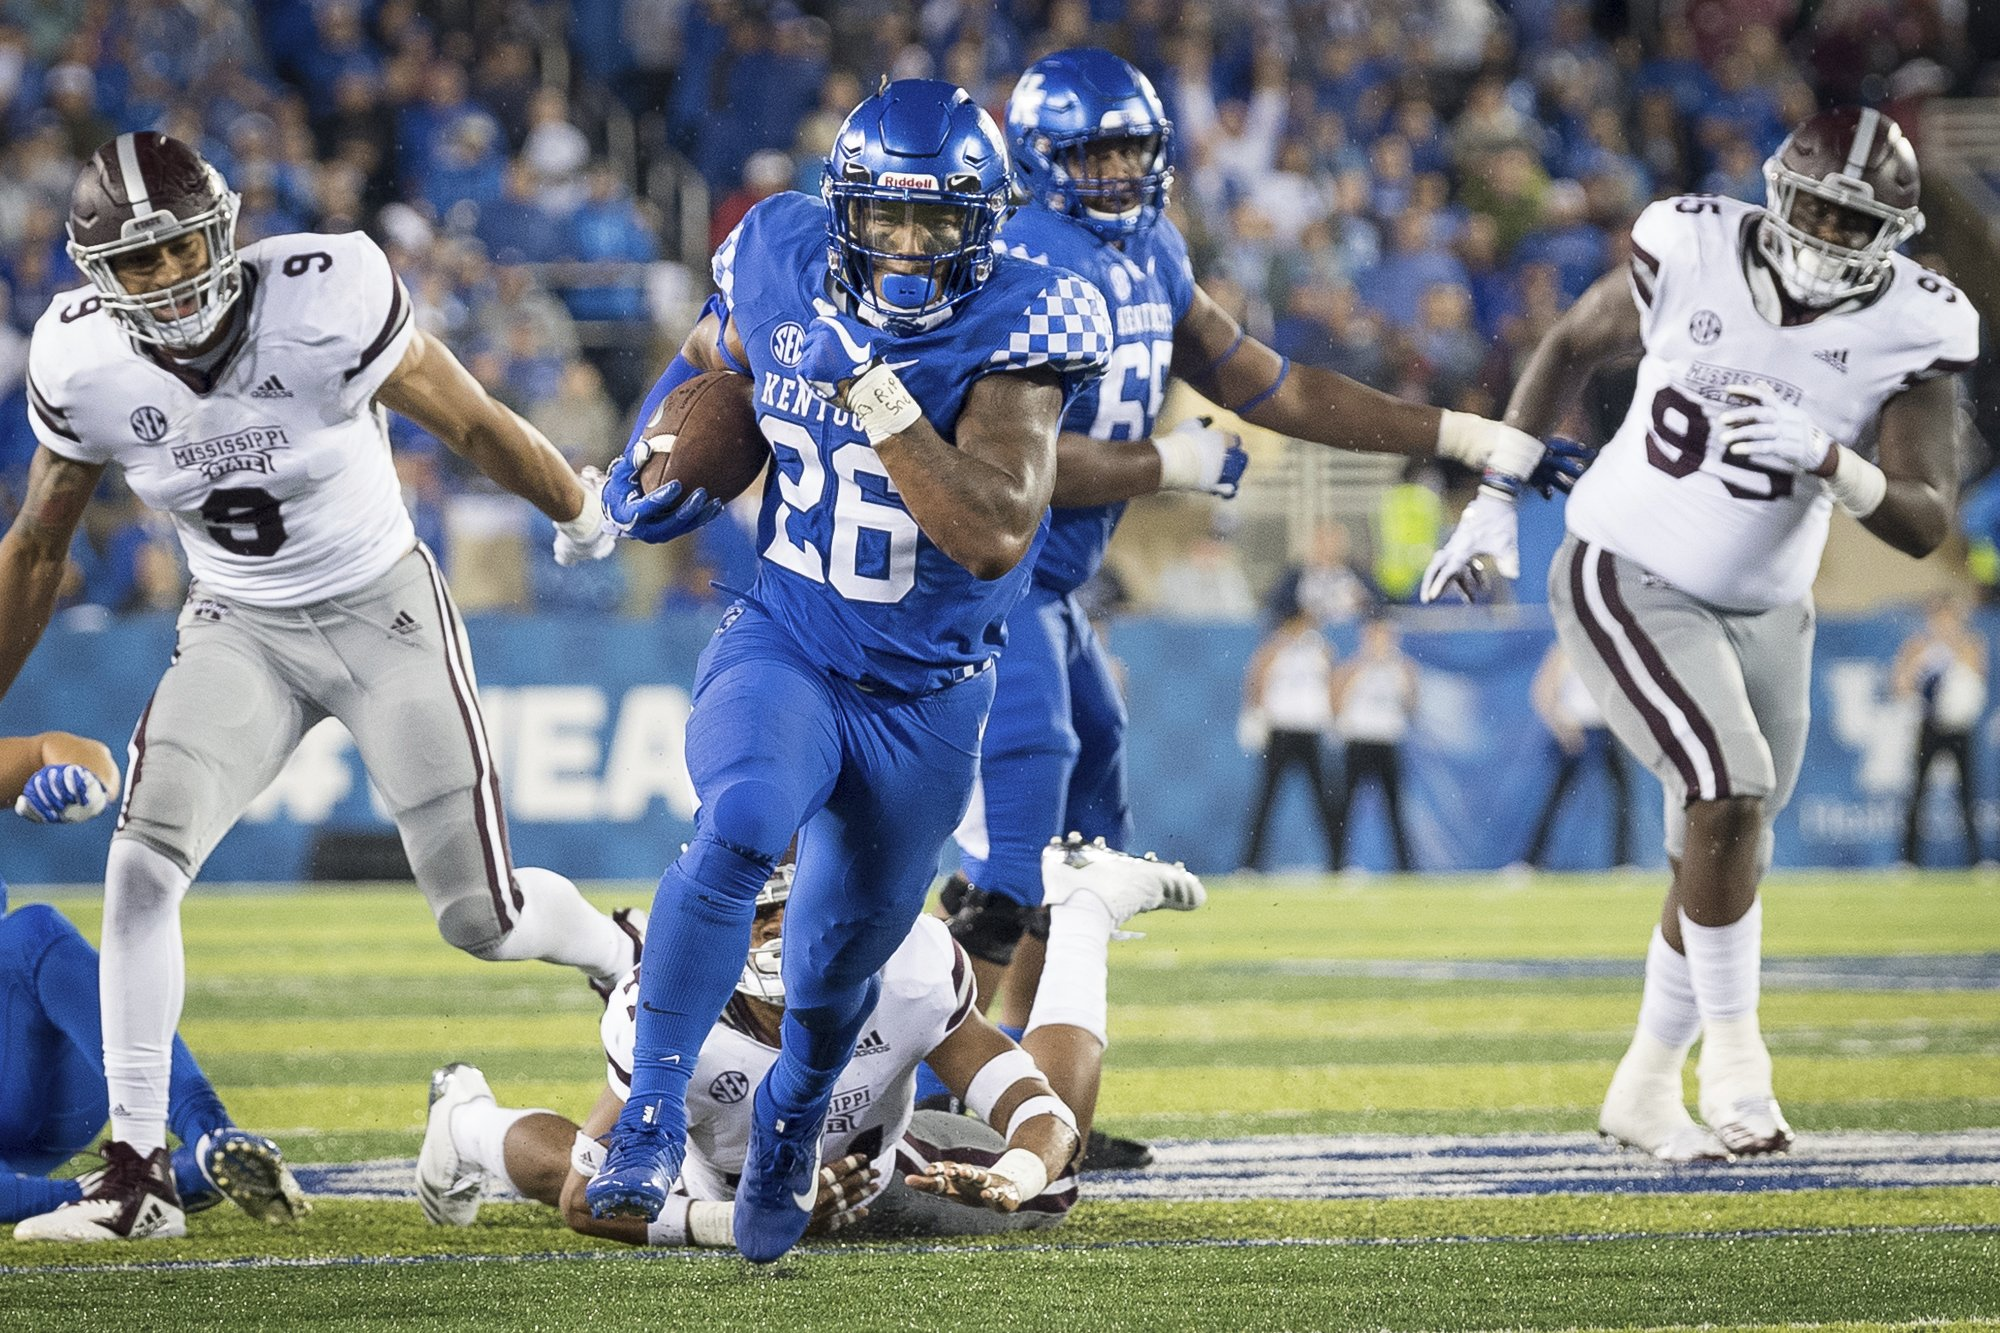 Snell leads Kentucky past No. 14 Mississippi State 28-7 84e1dda89